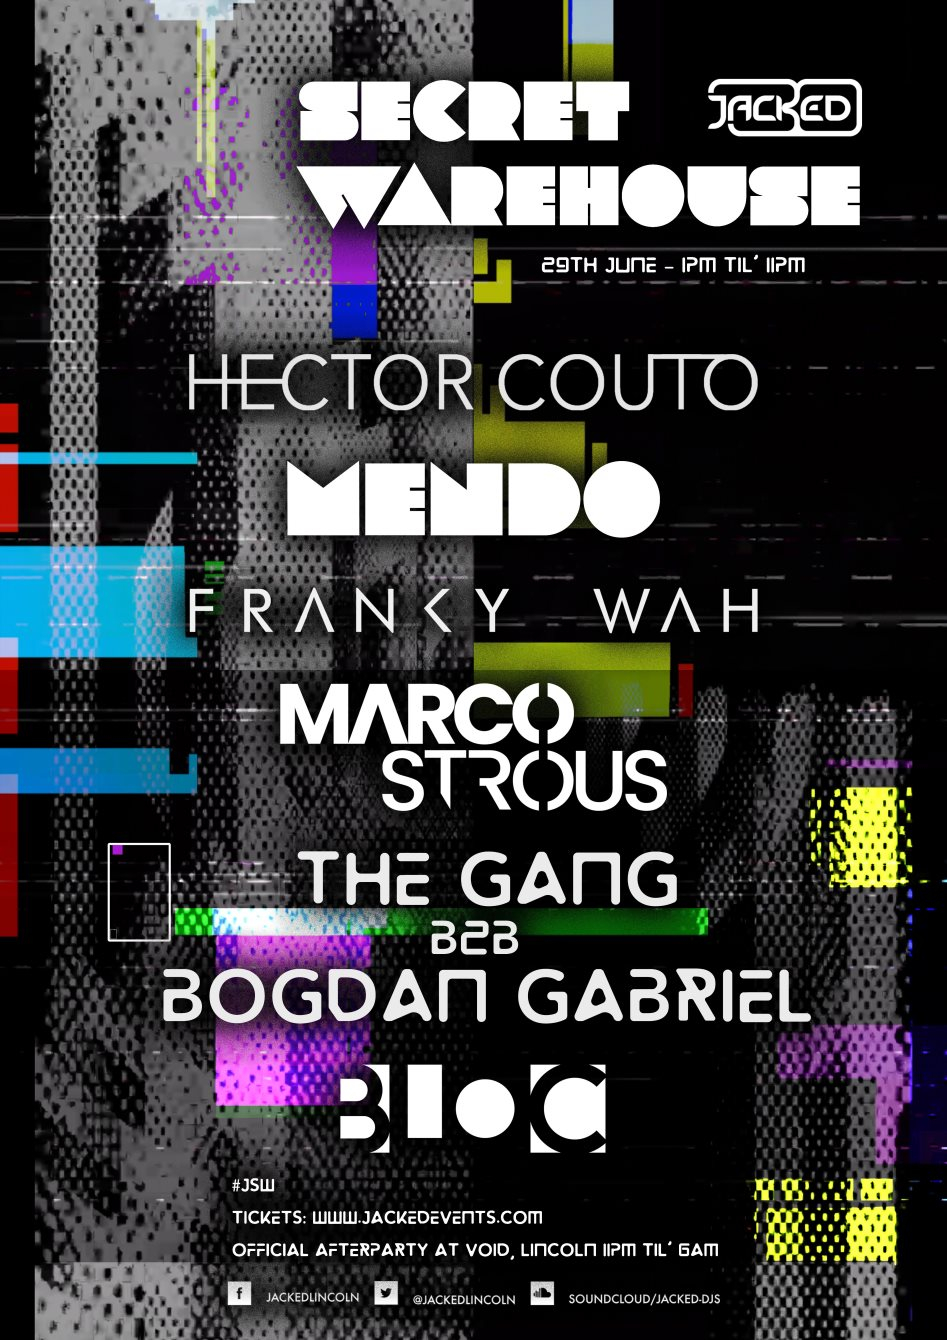 Jacked Warehouse feat. Hector Couto - Mendo - Franky Wah - Marco Strous - The Gang - Flyer back